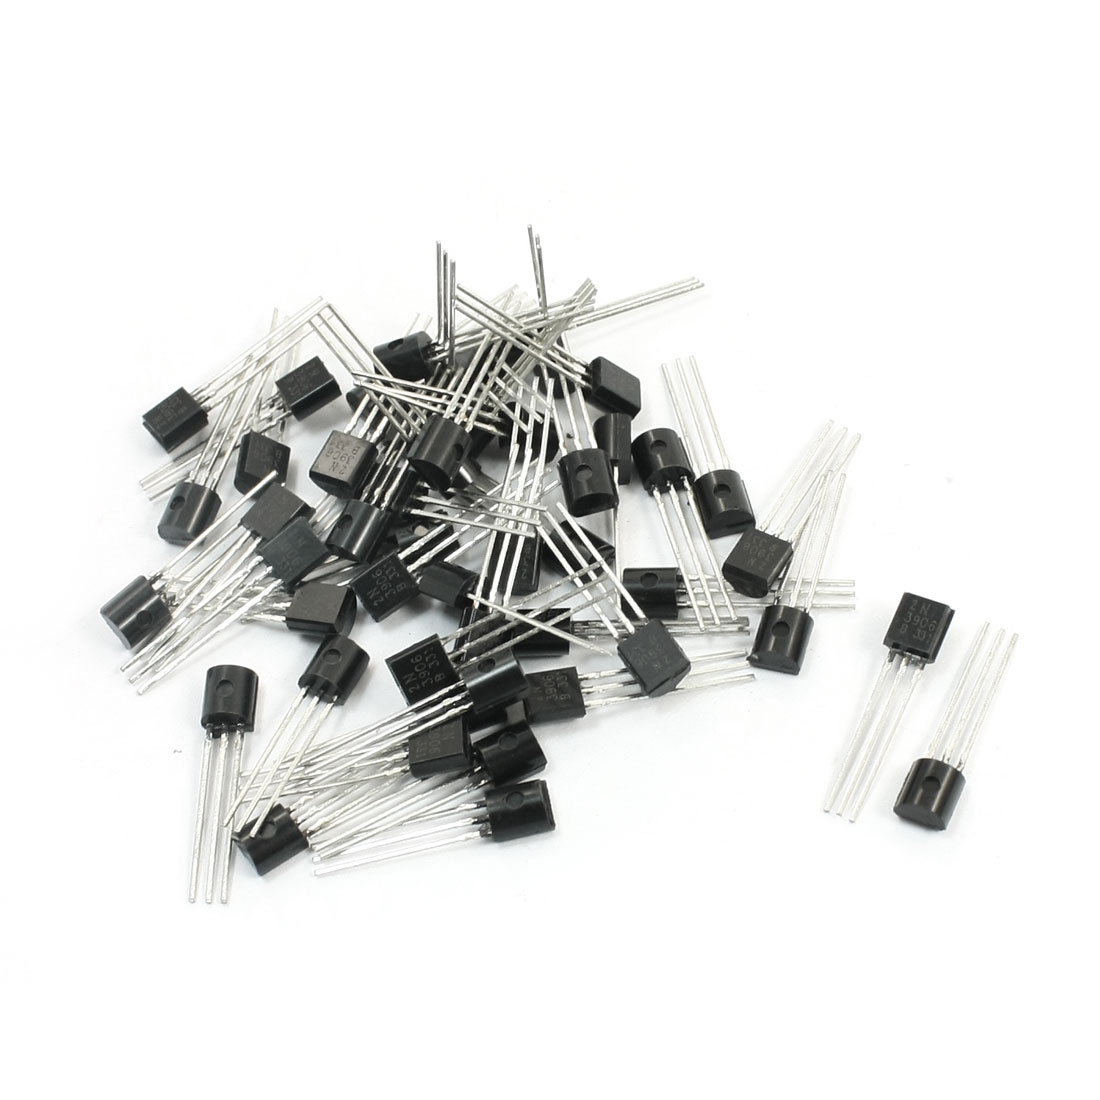 50pcs General Propose 2N3906 40V 200mA TO-92 Package PNP Transistor